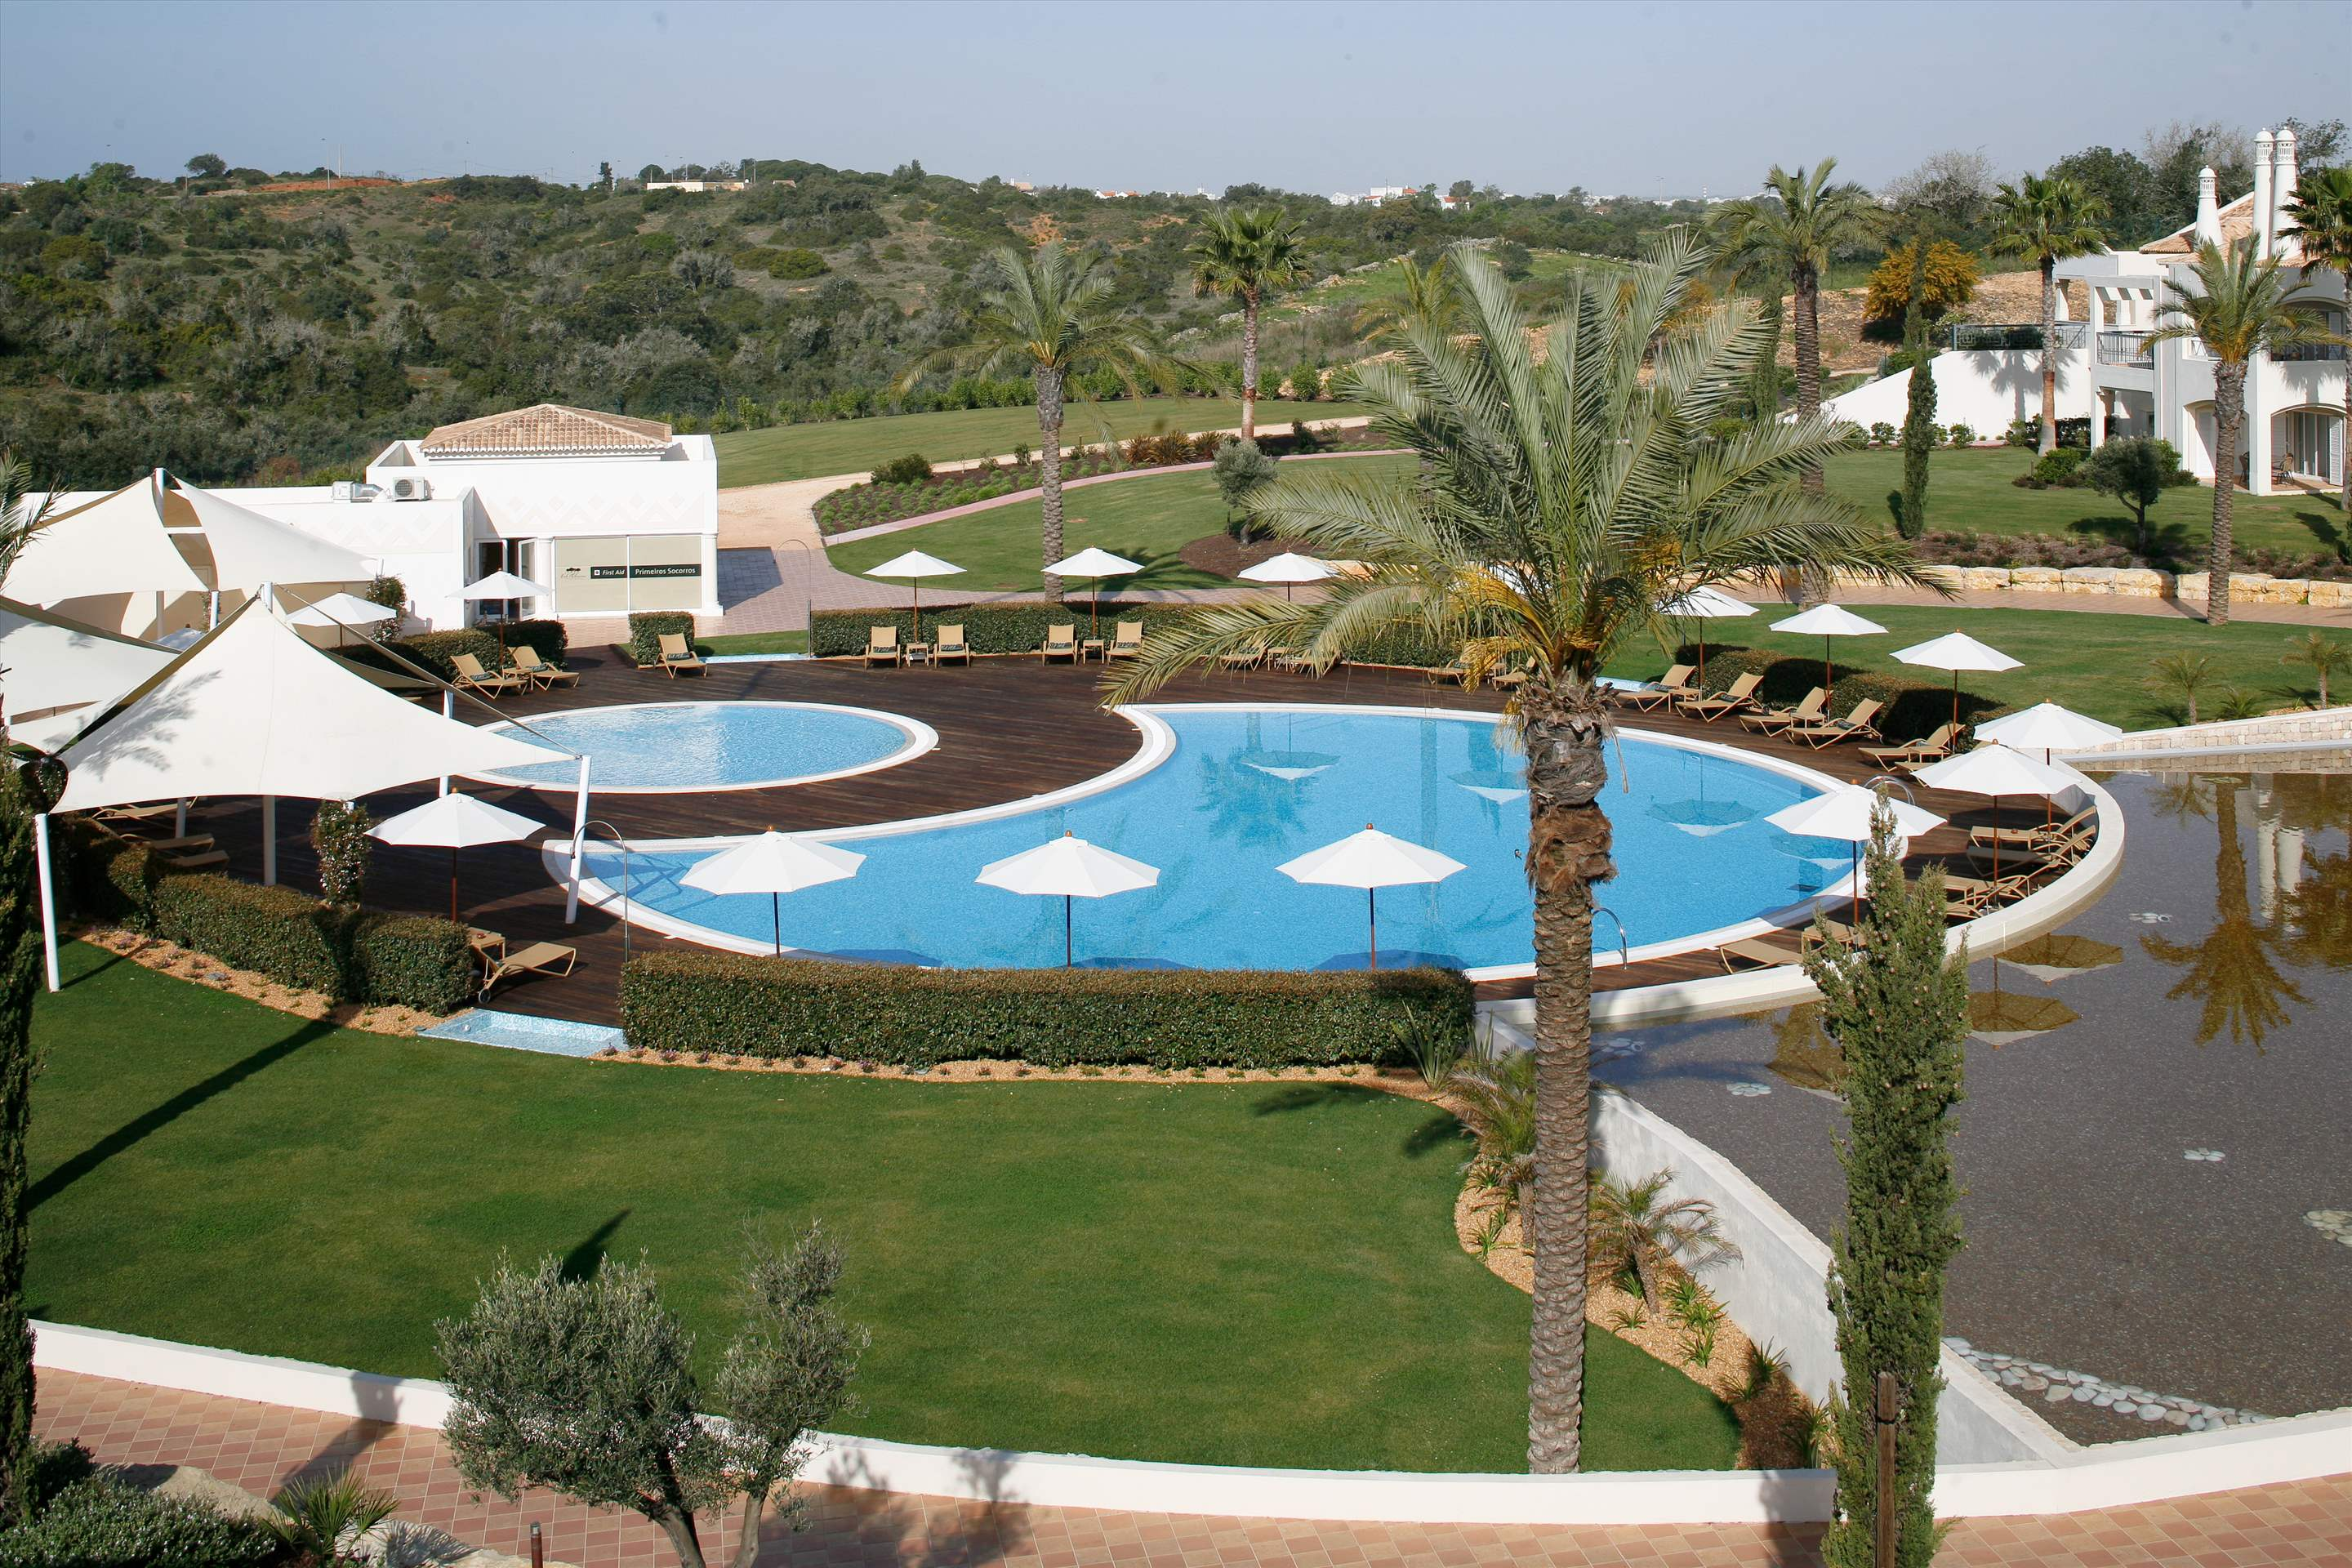 Vale dOliveiras Hotel Double/ Twin Room BB Basis, 1 bedroom hotel in Vale d'Oliveiras Resort & Spa, Algarve Photo #28